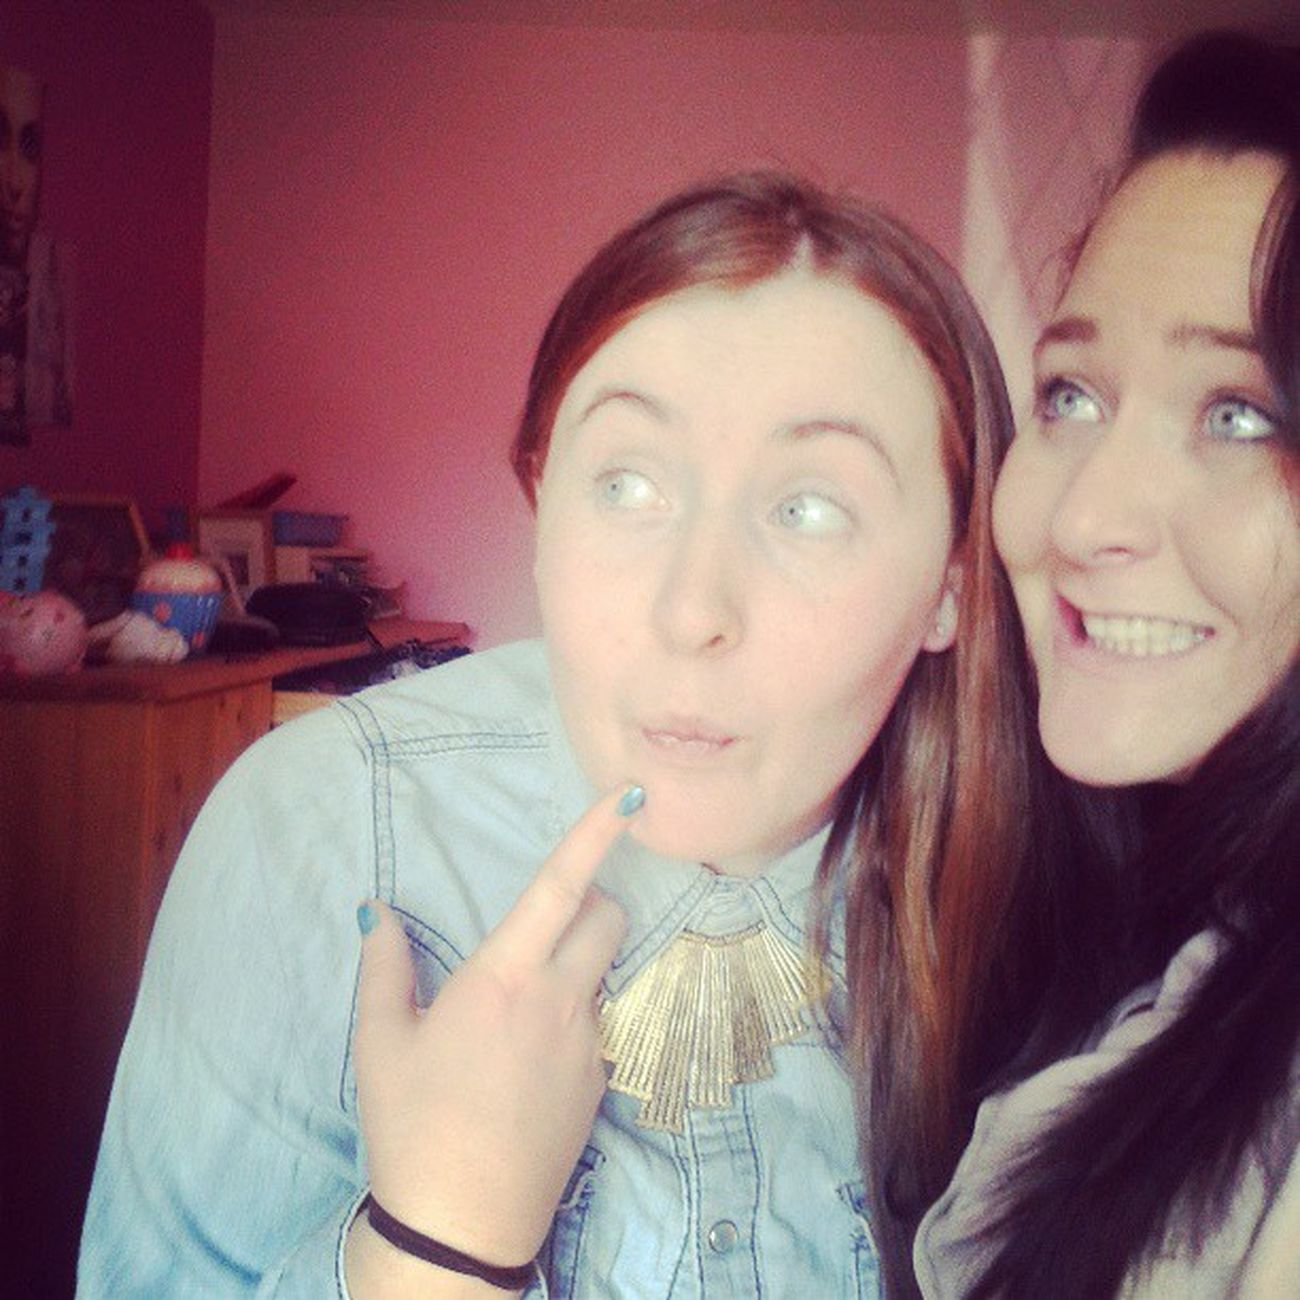 see you in 10 days Crazygirl Holidaysforher Rossnawlagh Pose missyou sister weesister welljel imbored